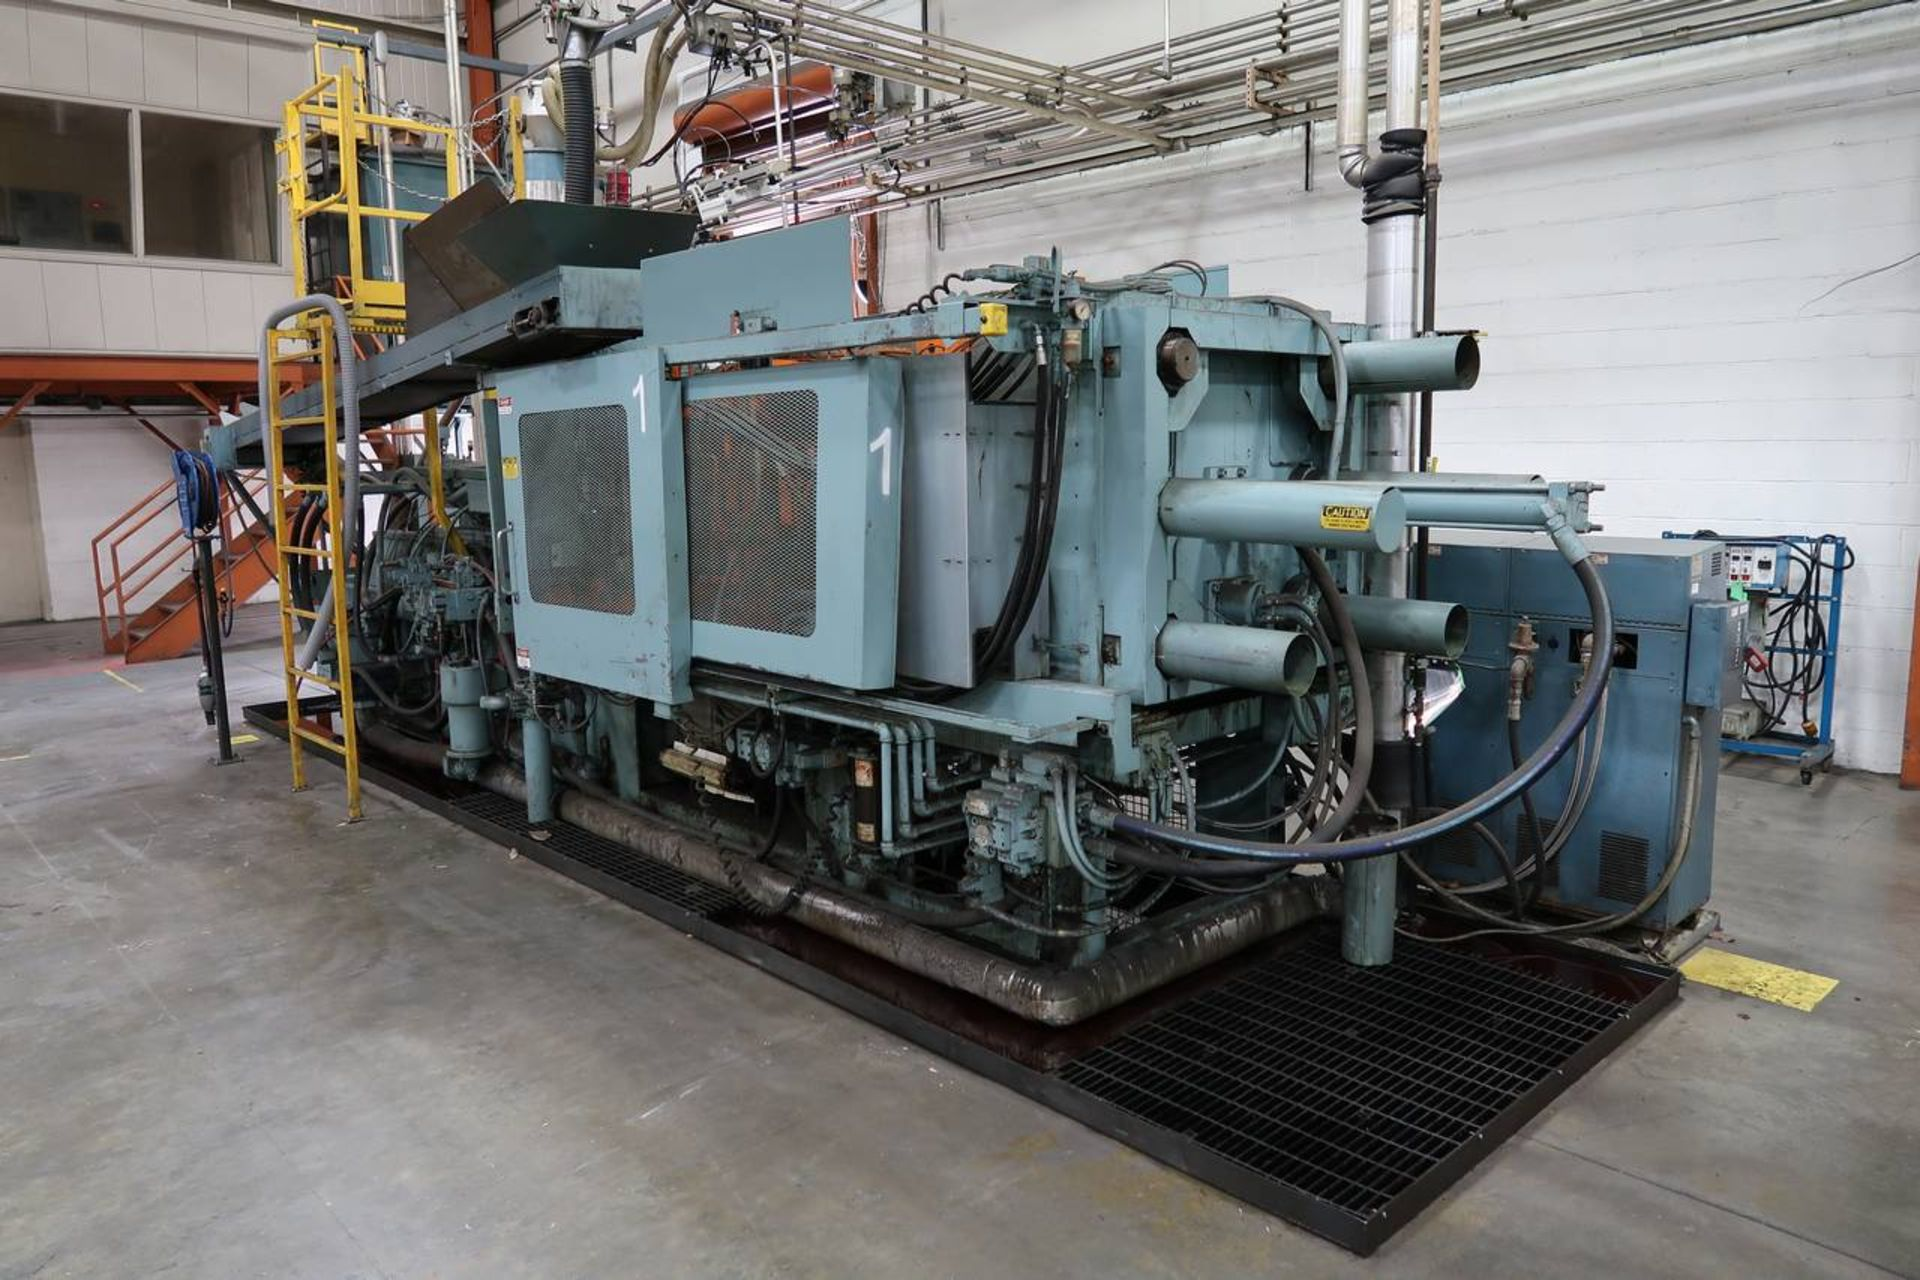 1986 HPM 400-TP-20 400-Ton Thermo Plastic Injection Molding Press - Image 4 of 40